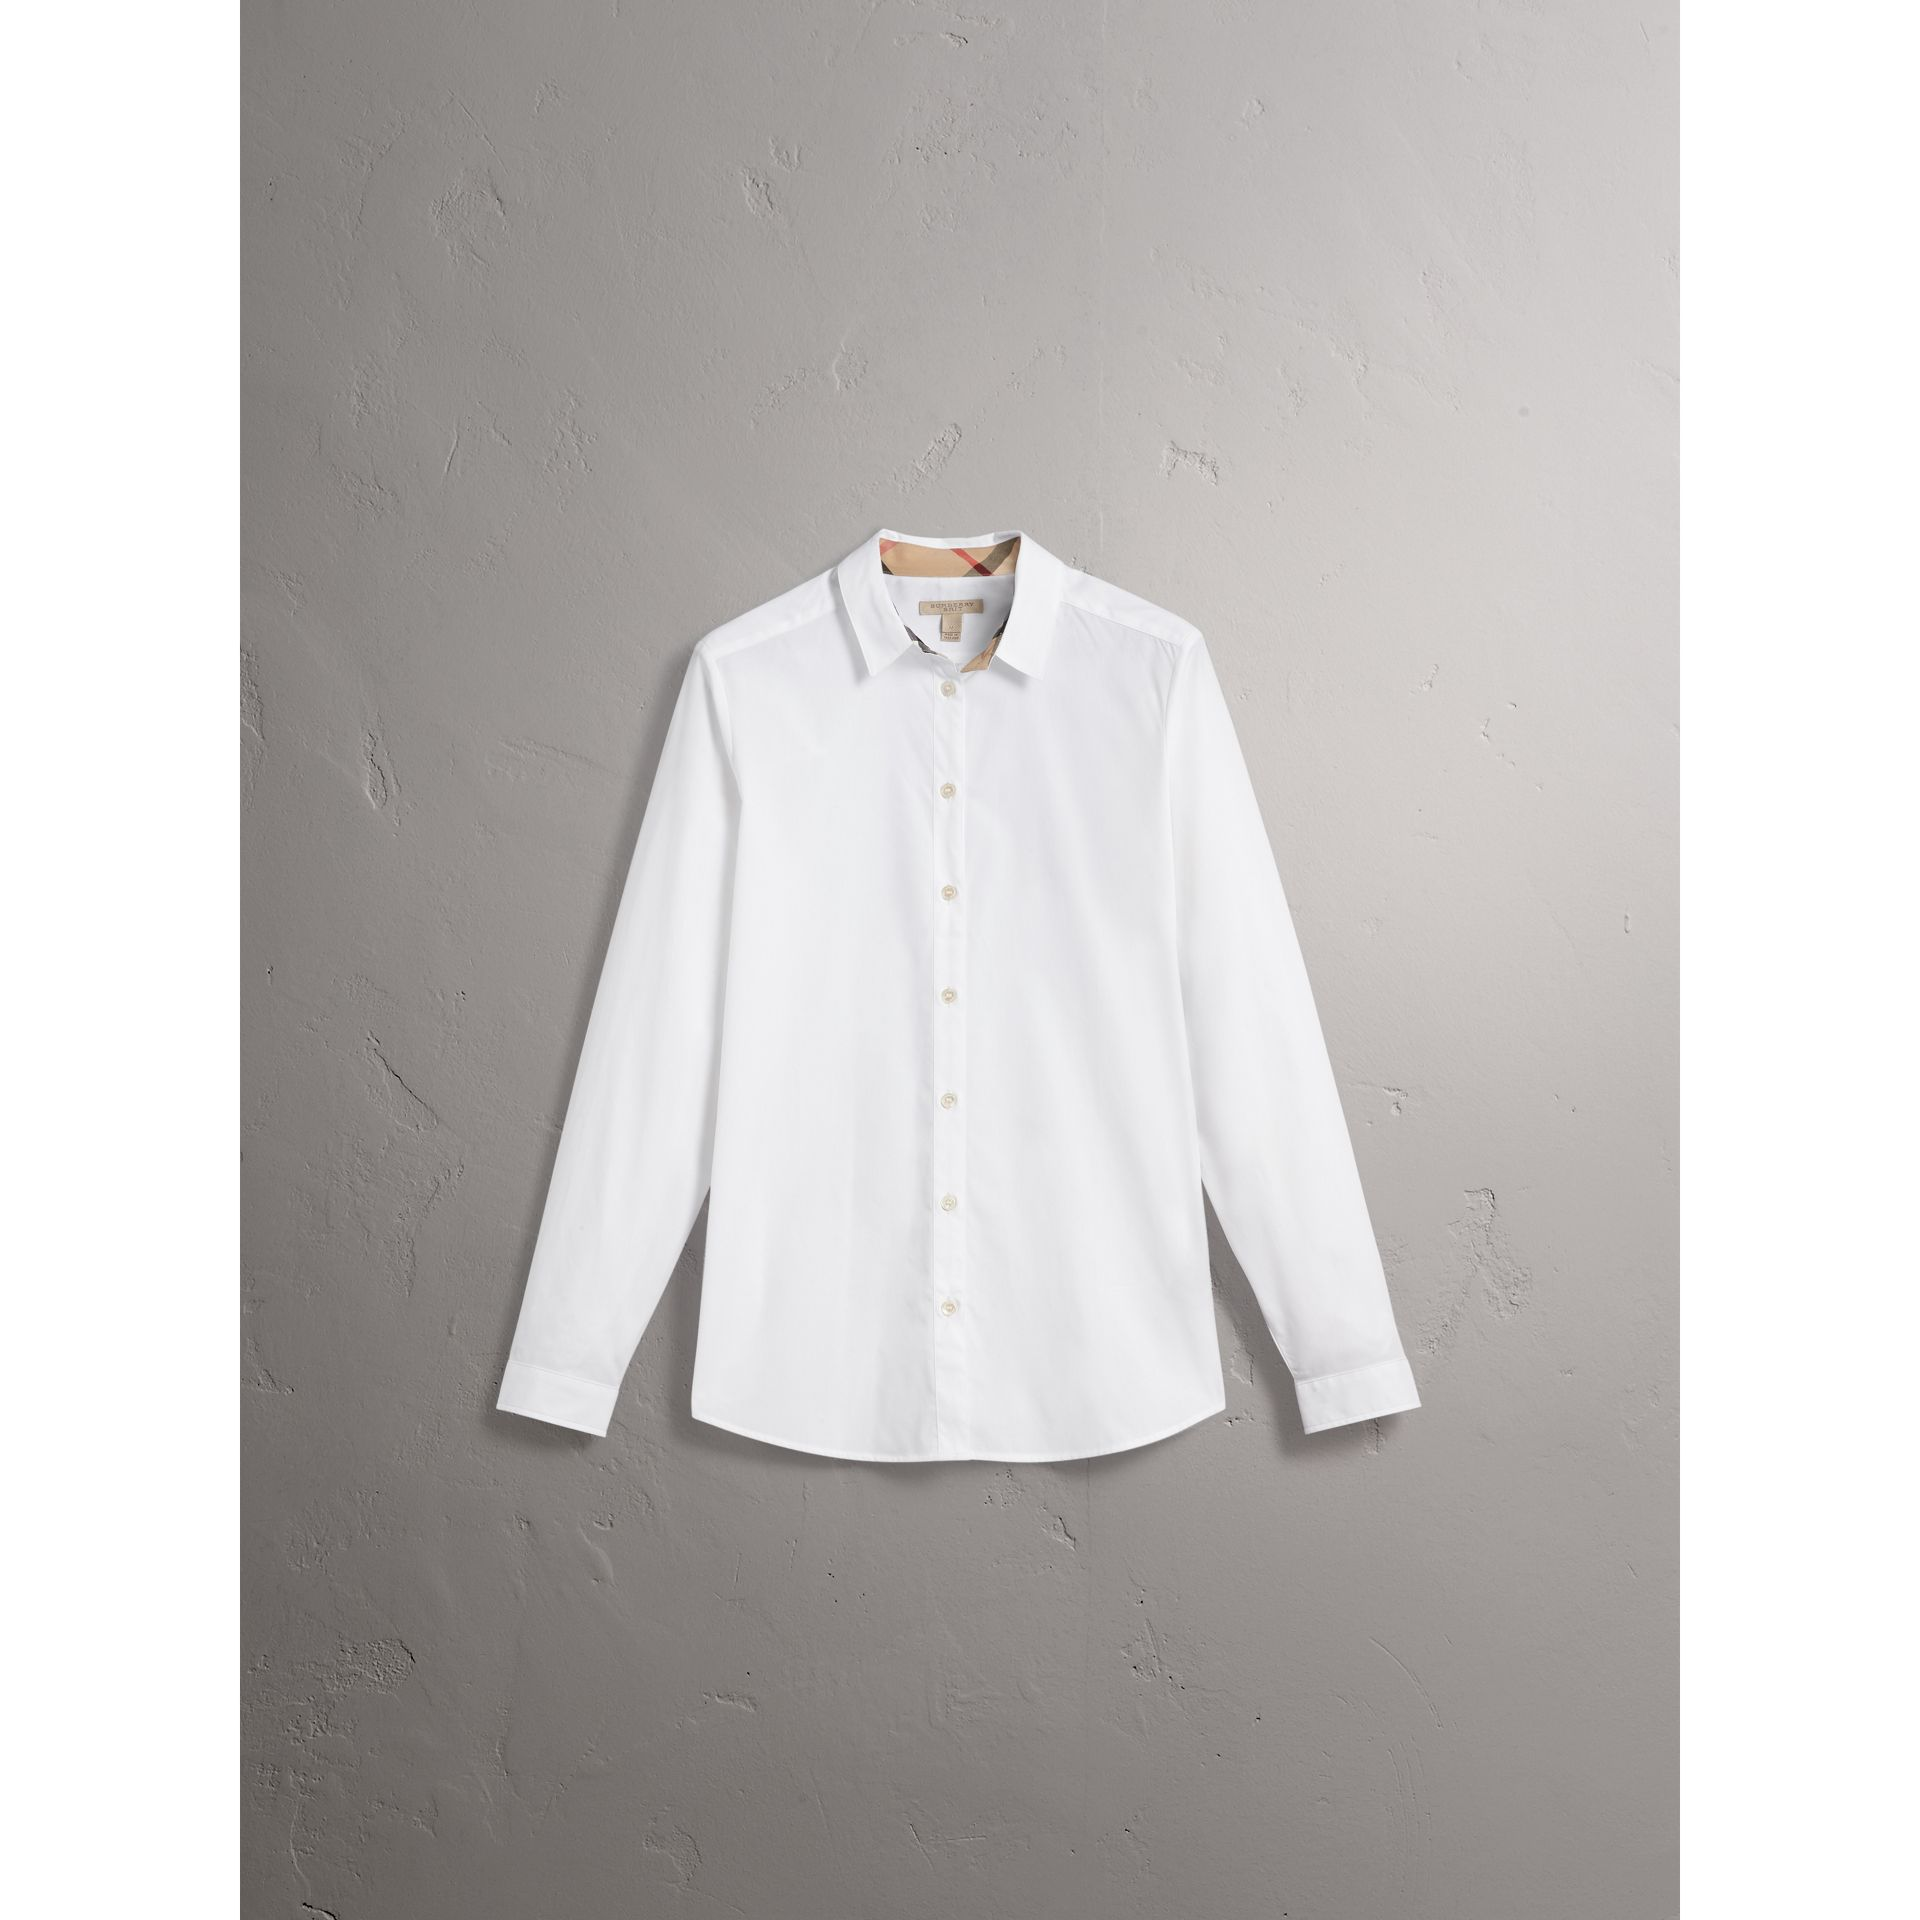 Check Detail Stretch Cotton Shirt in White - Women | Burberry - gallery image 4